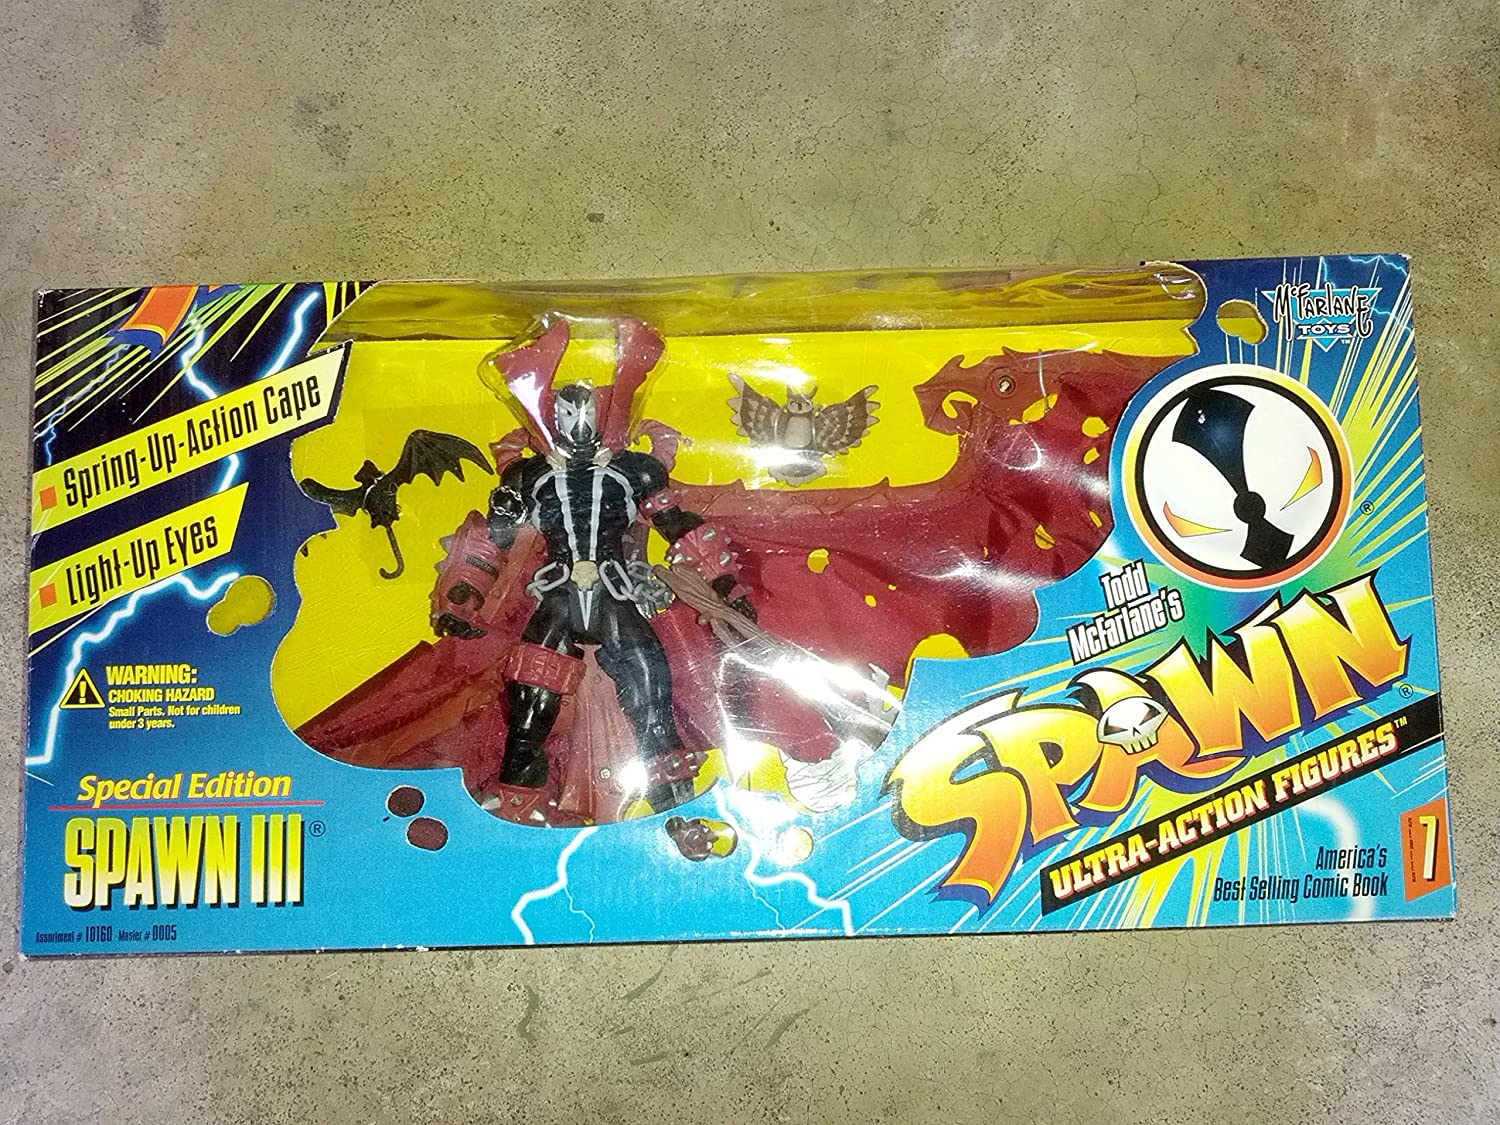 McFarlane Toys Spawn III Special Edition Series 7 Action Figure Boxed